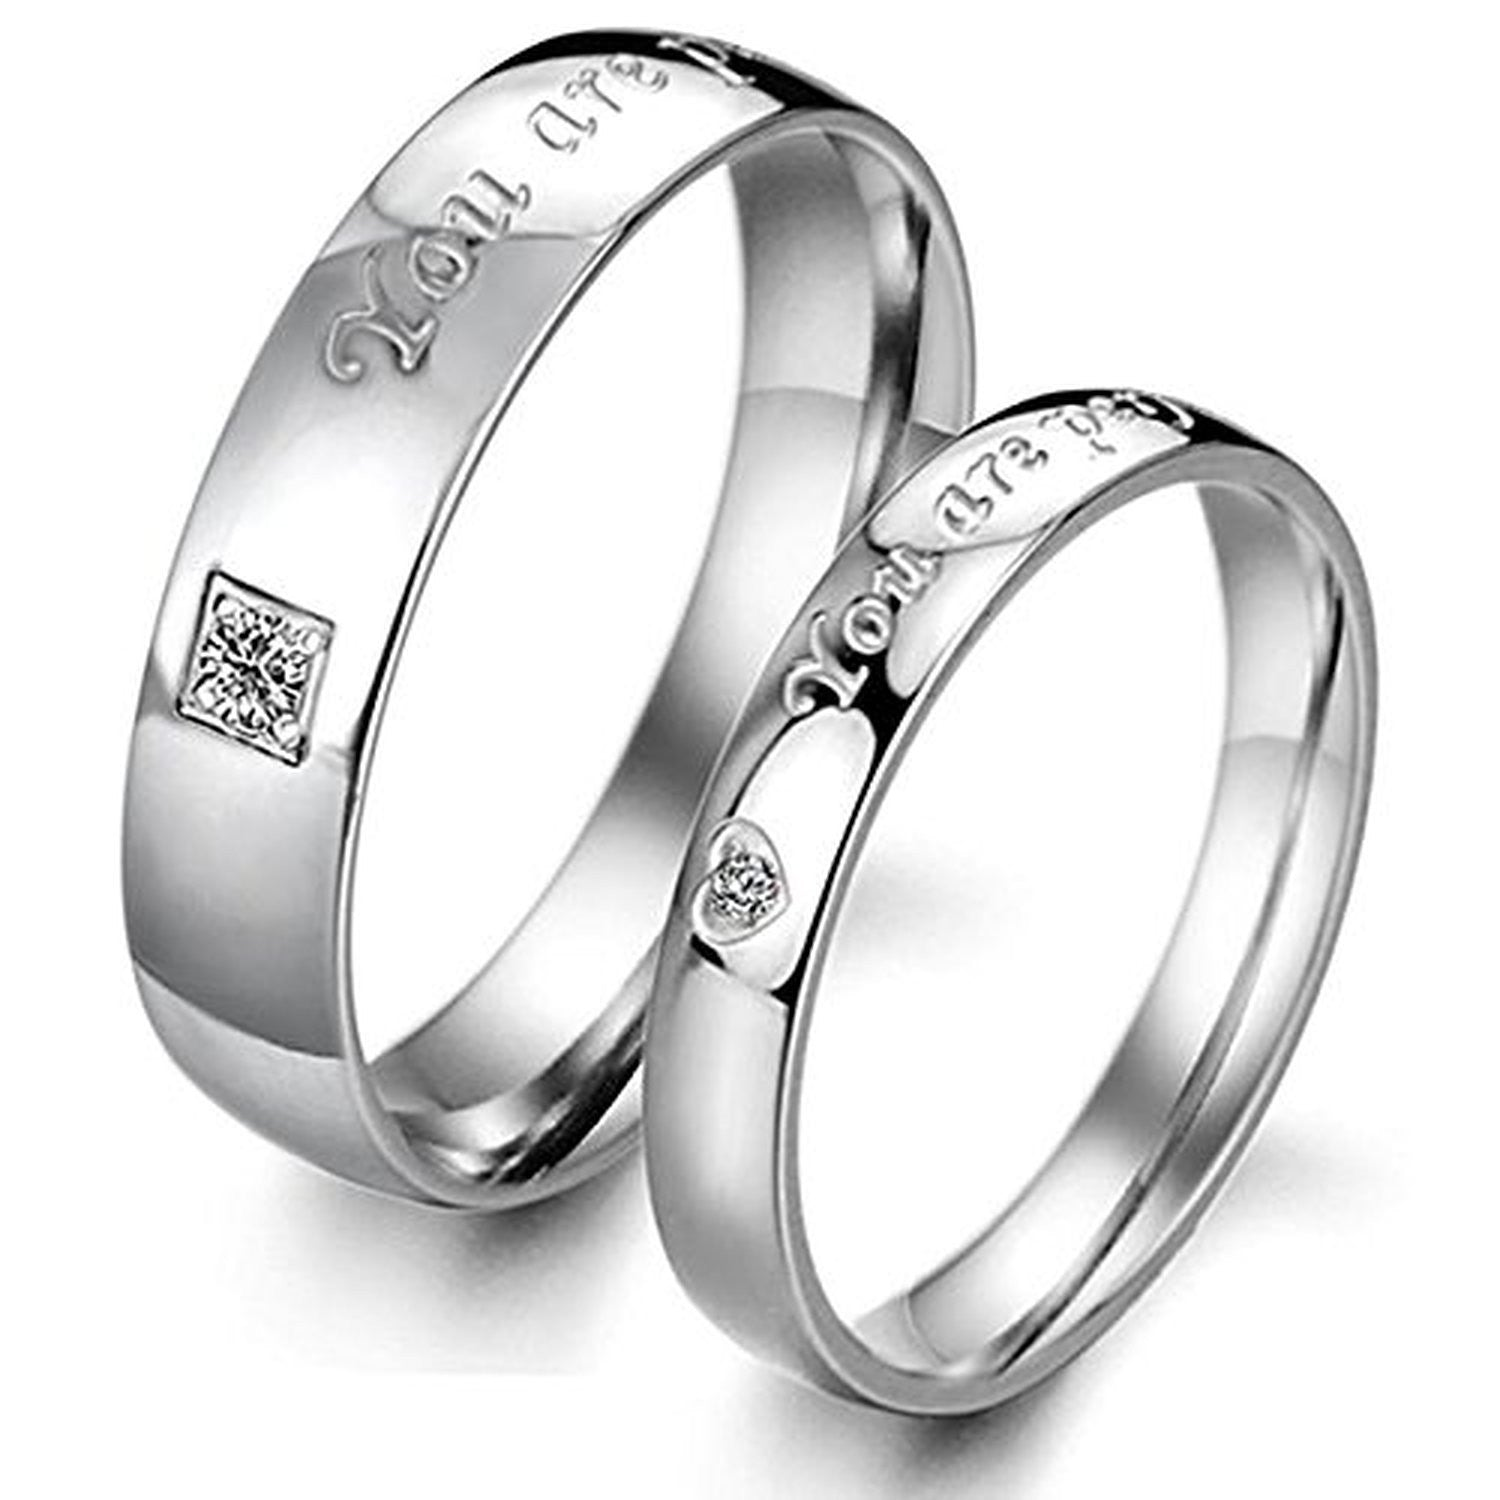 wedding couple cubic promise bands new plated zironina of rings silver evermarker